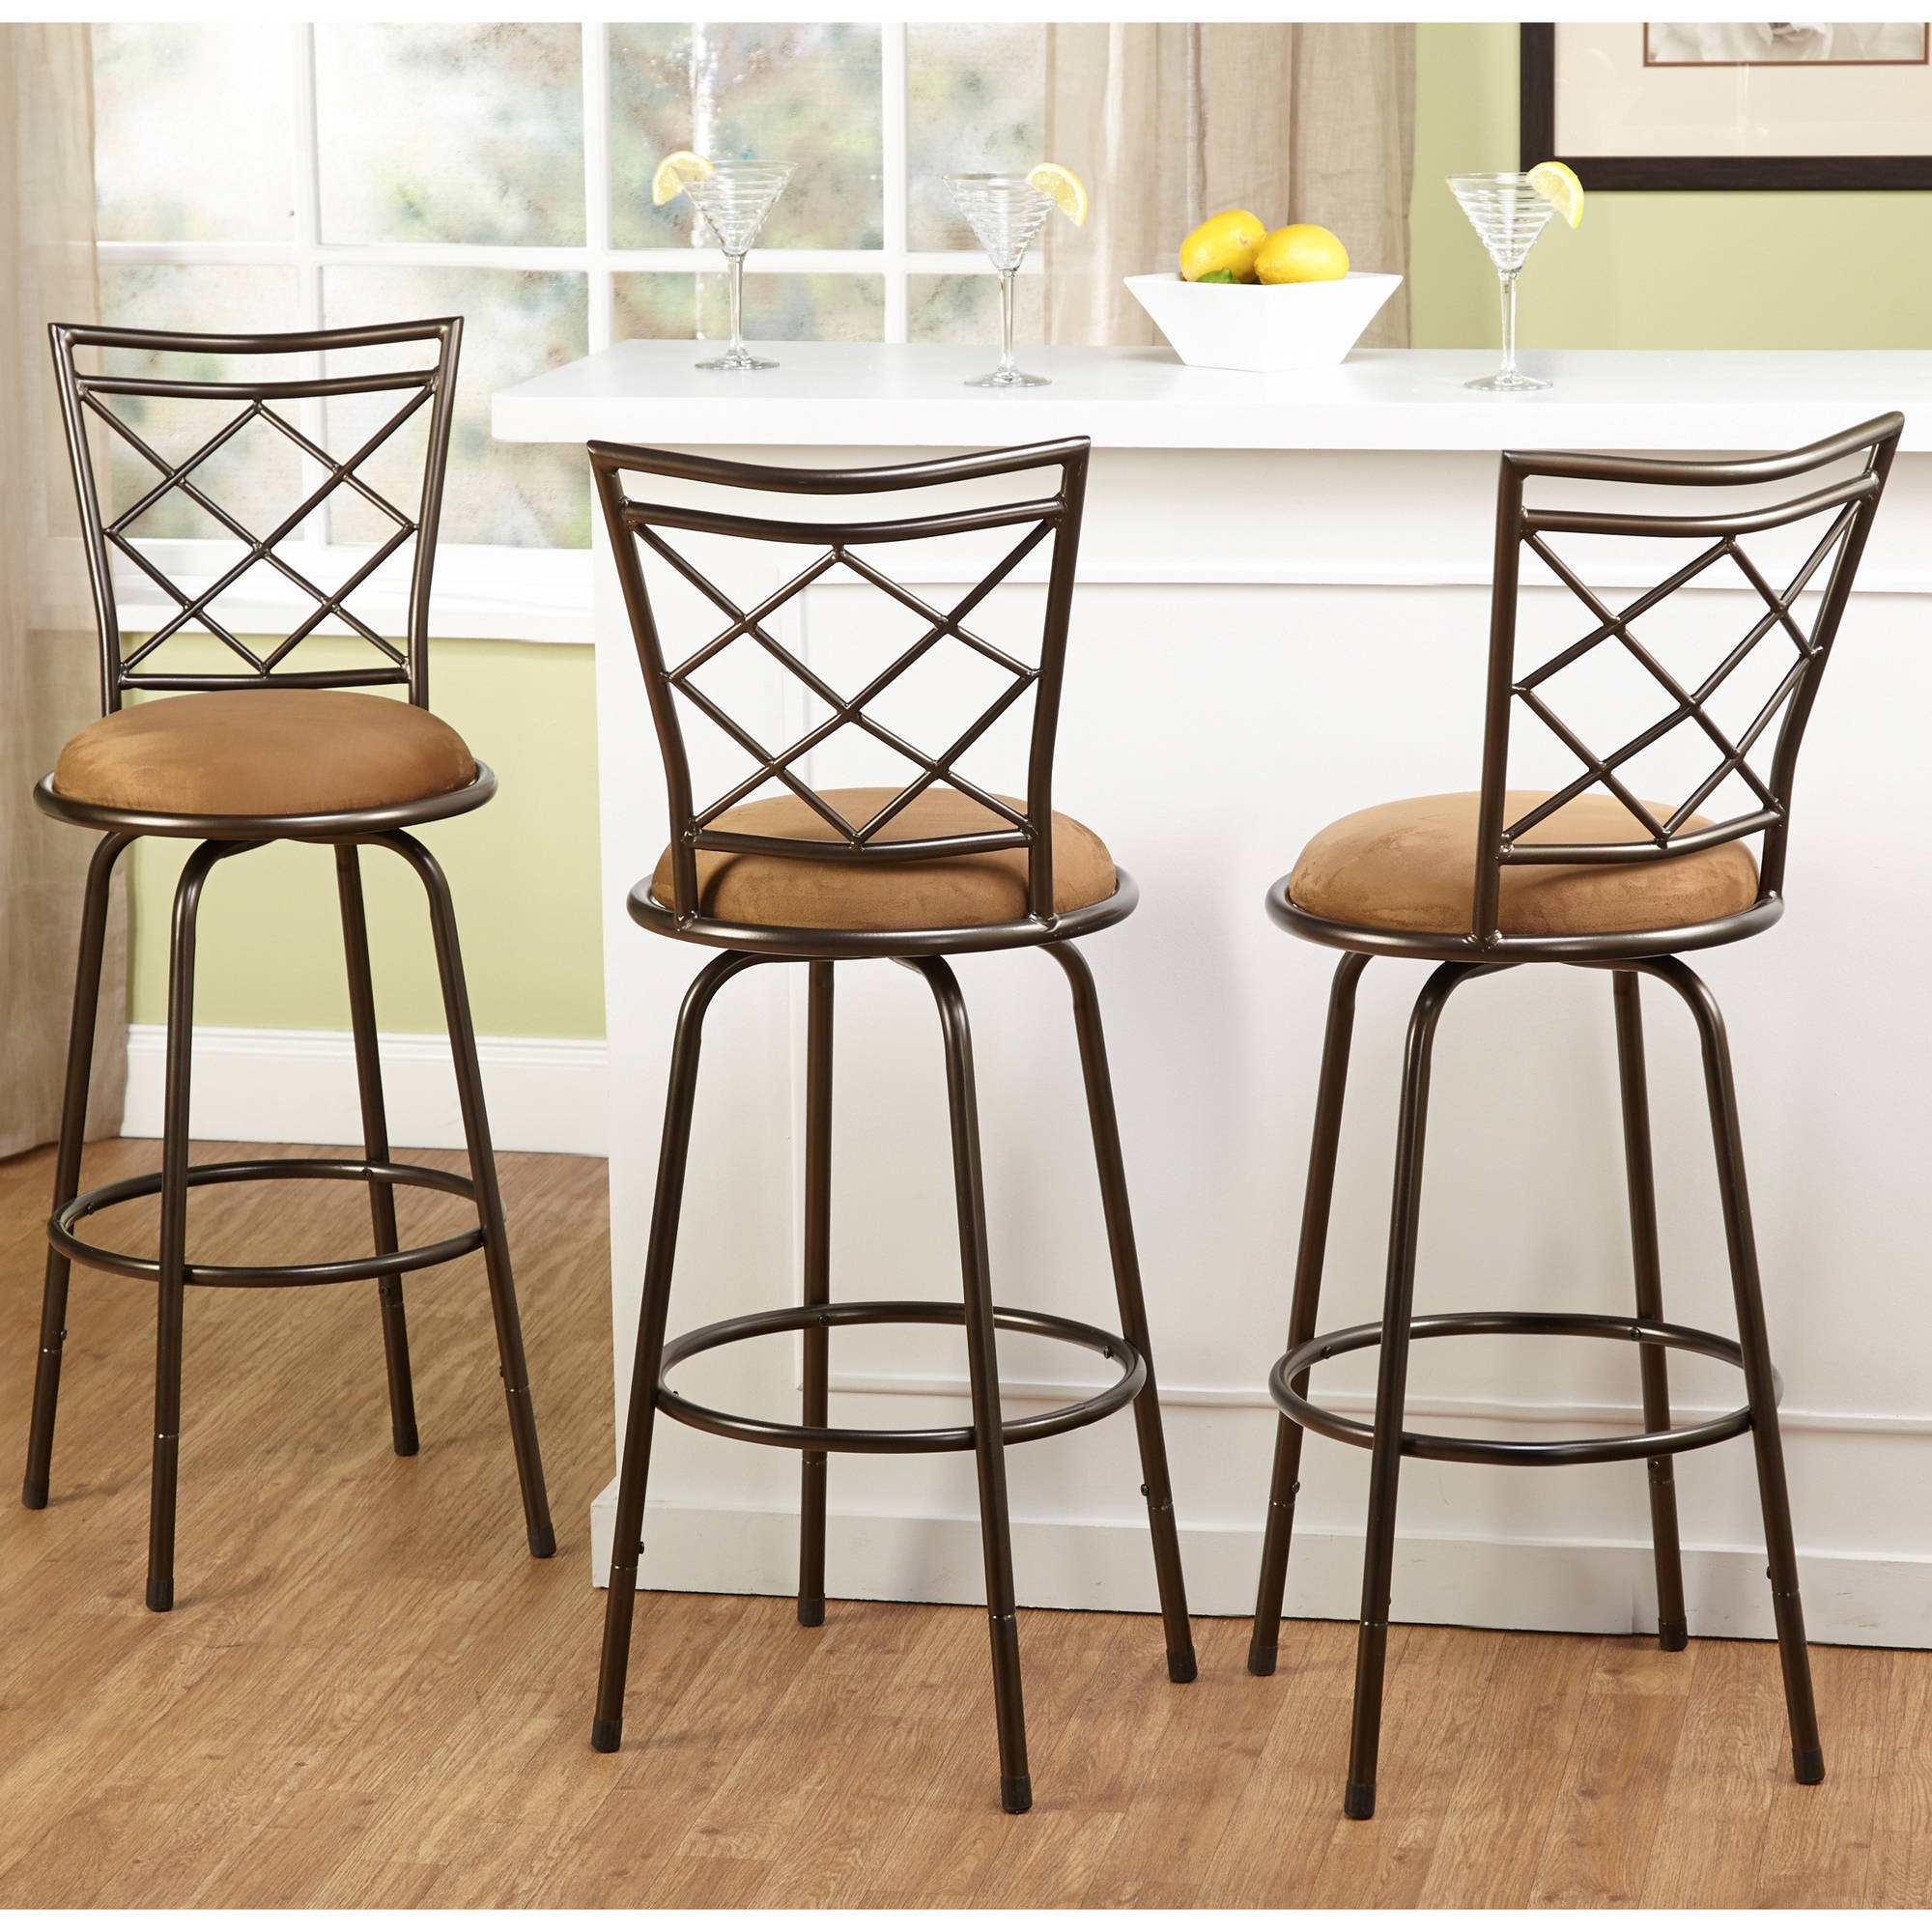 3 Piece Avery Adjustable Height Barstool, Multiple Colors